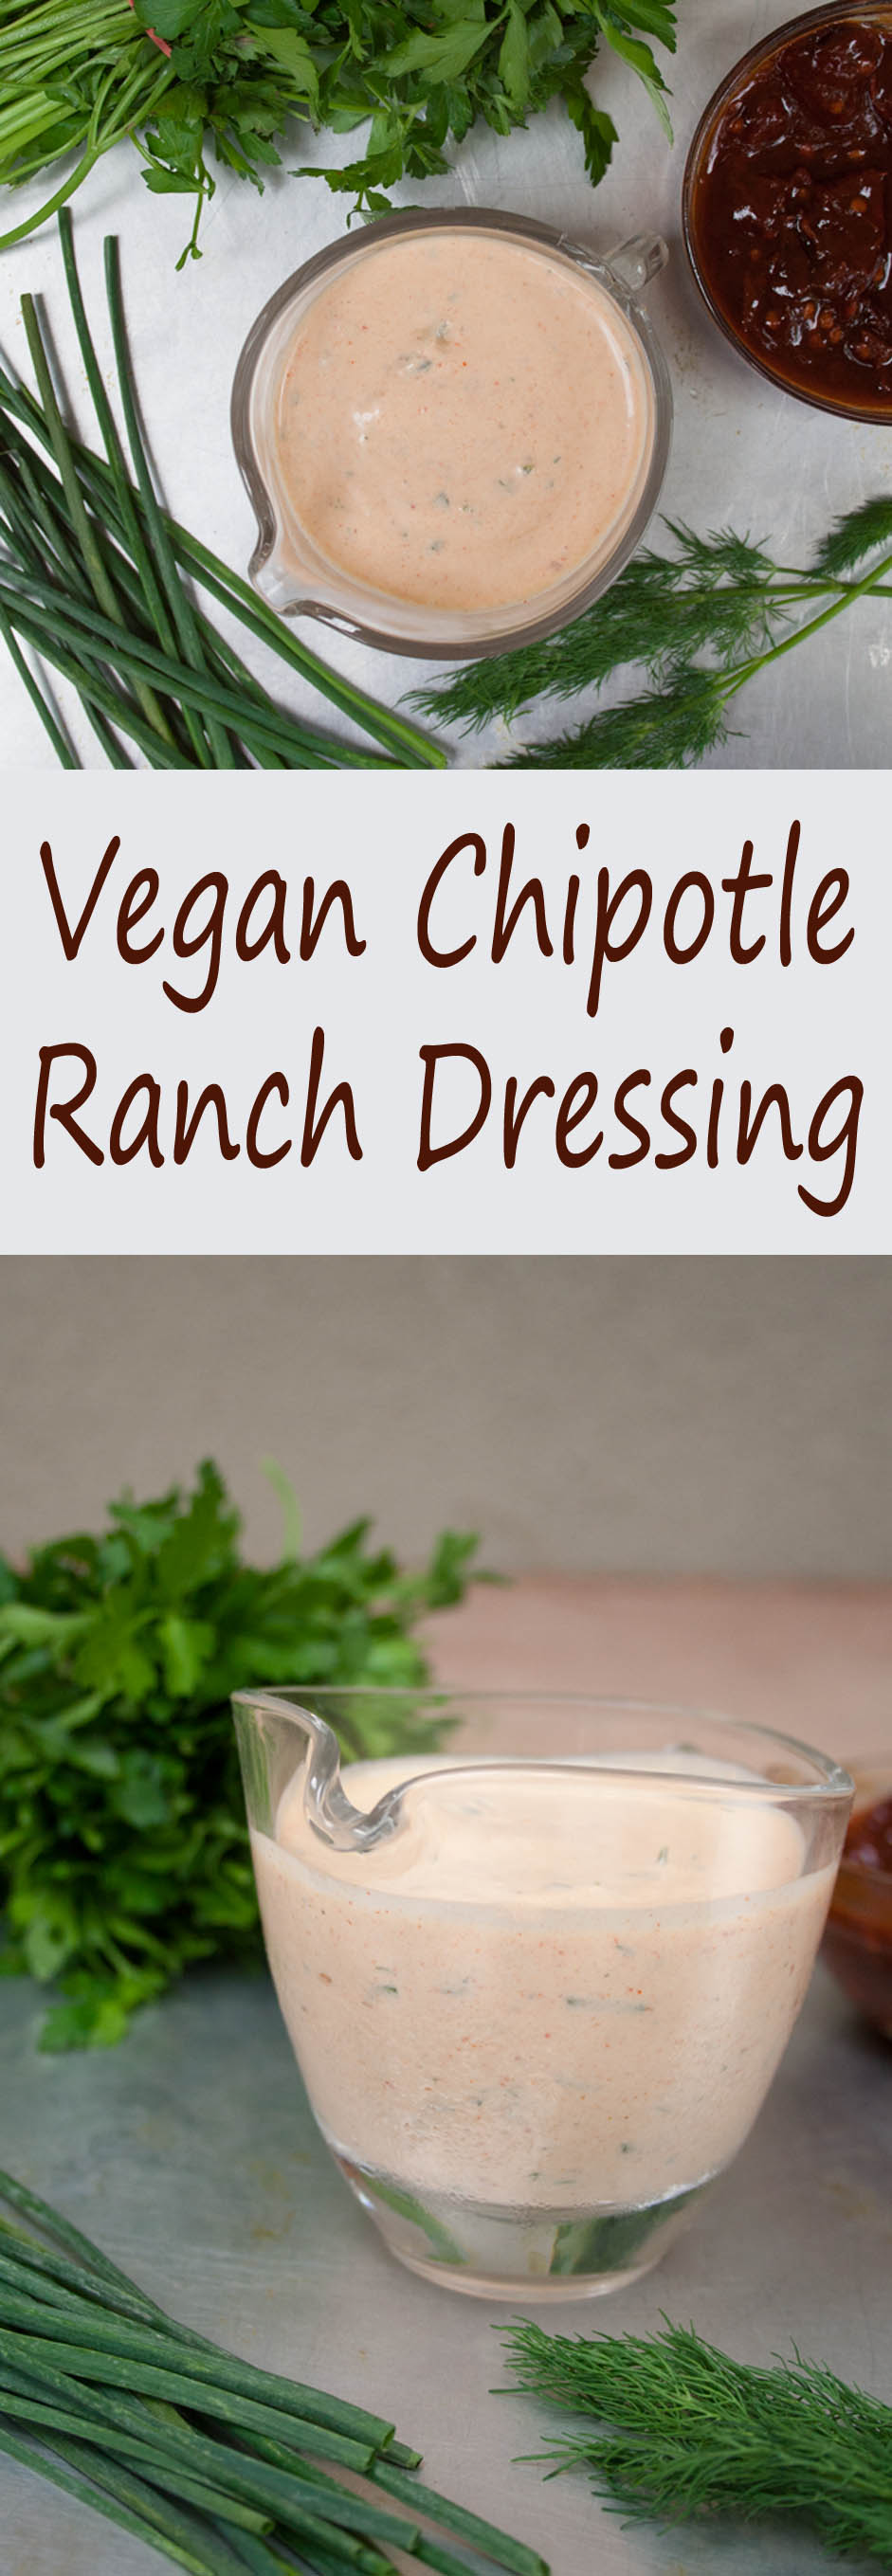 Vegan Chipotle Ranch Dressing (vegan, gluten free) - This spicy, smoky dressing works well as a dressing or dip.